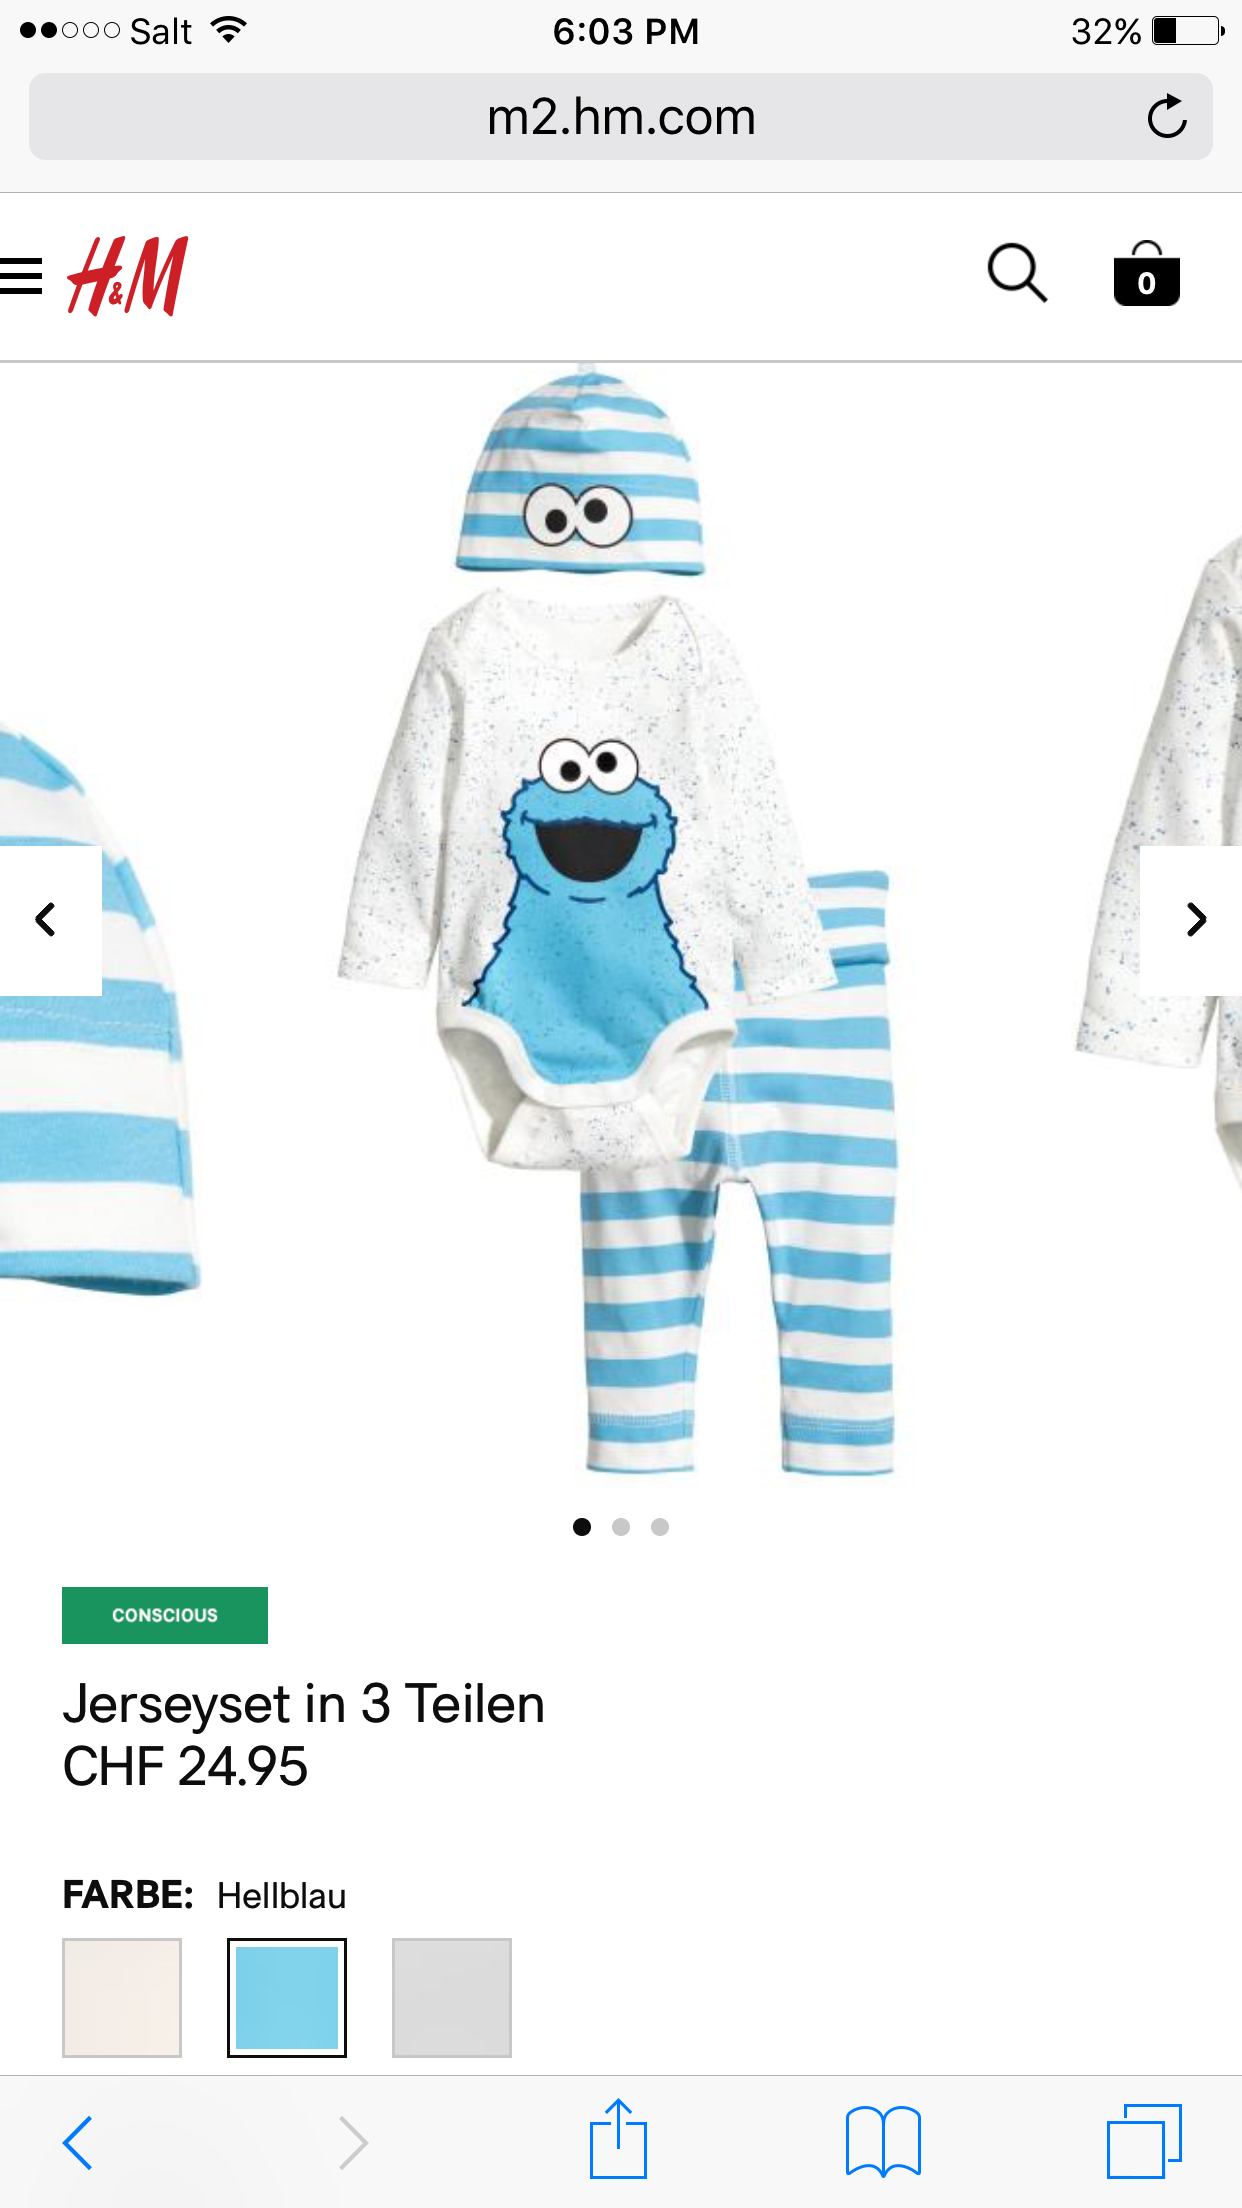 3 pce Newborn Outfit H&M Cookie Monster Baby Stuff